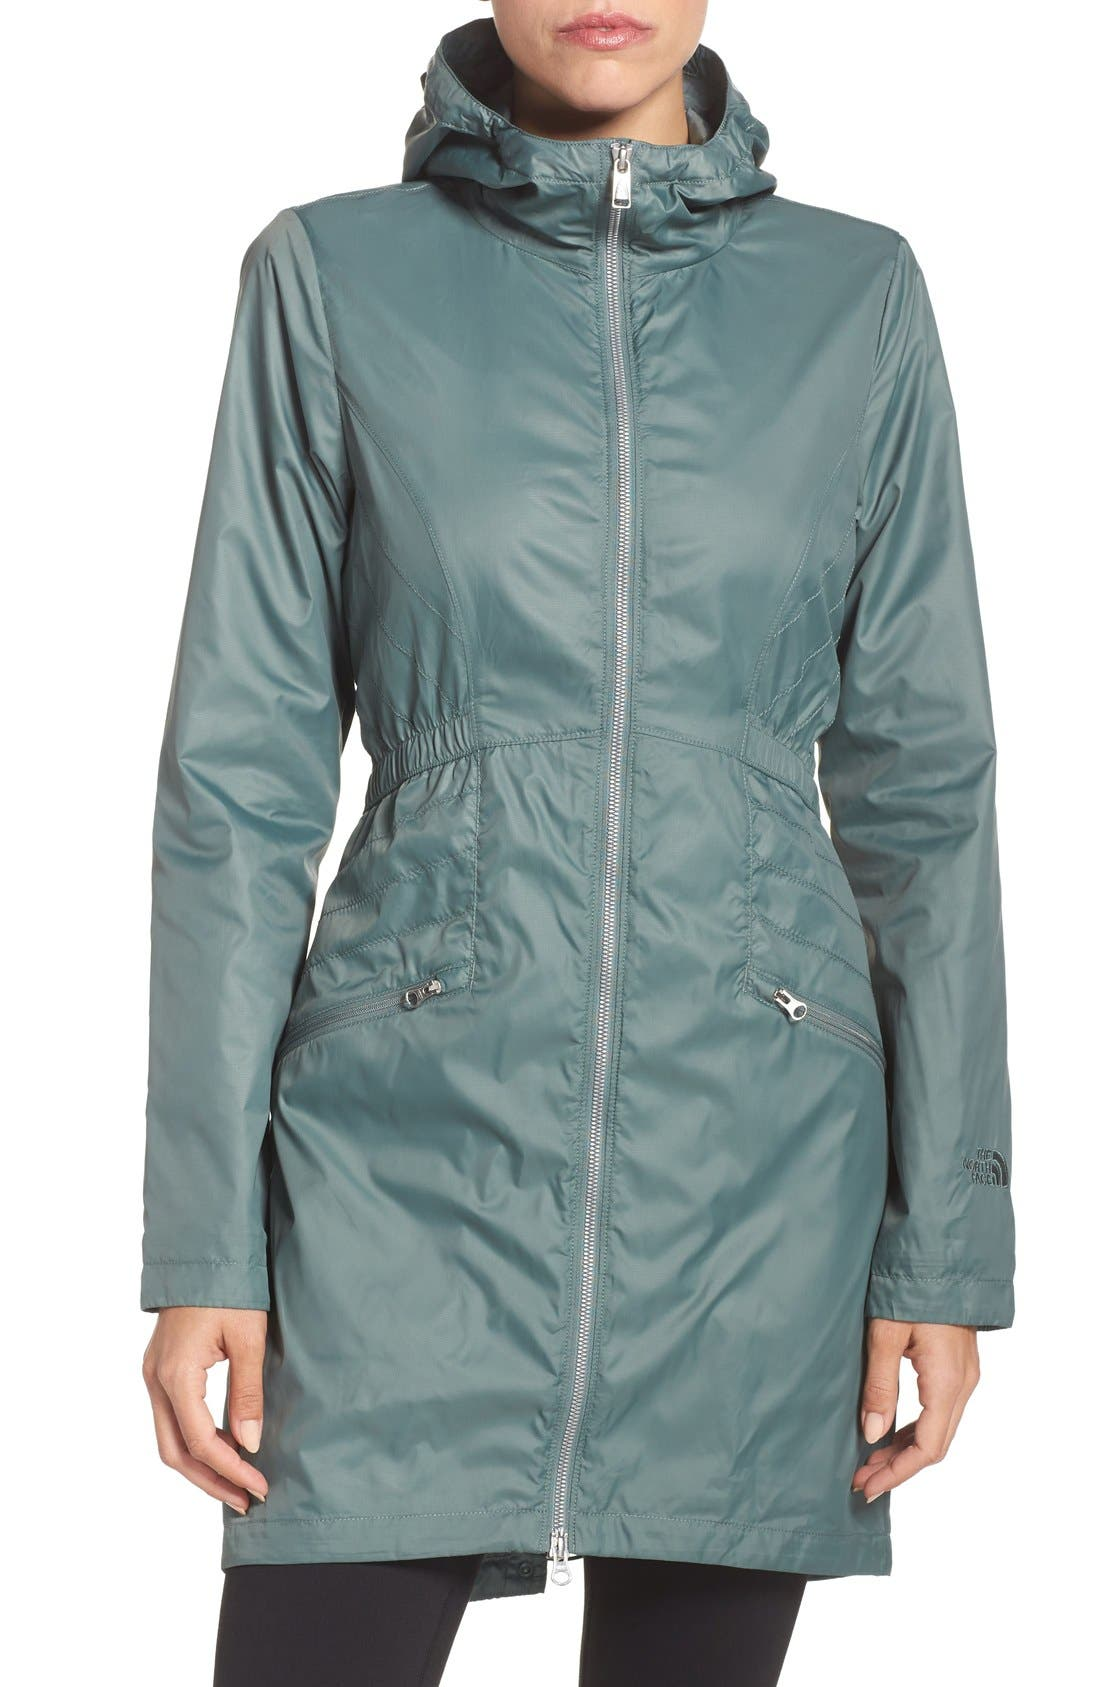 Main Image - The North Face Rissy 2 Packable Wind Resistant Jacket